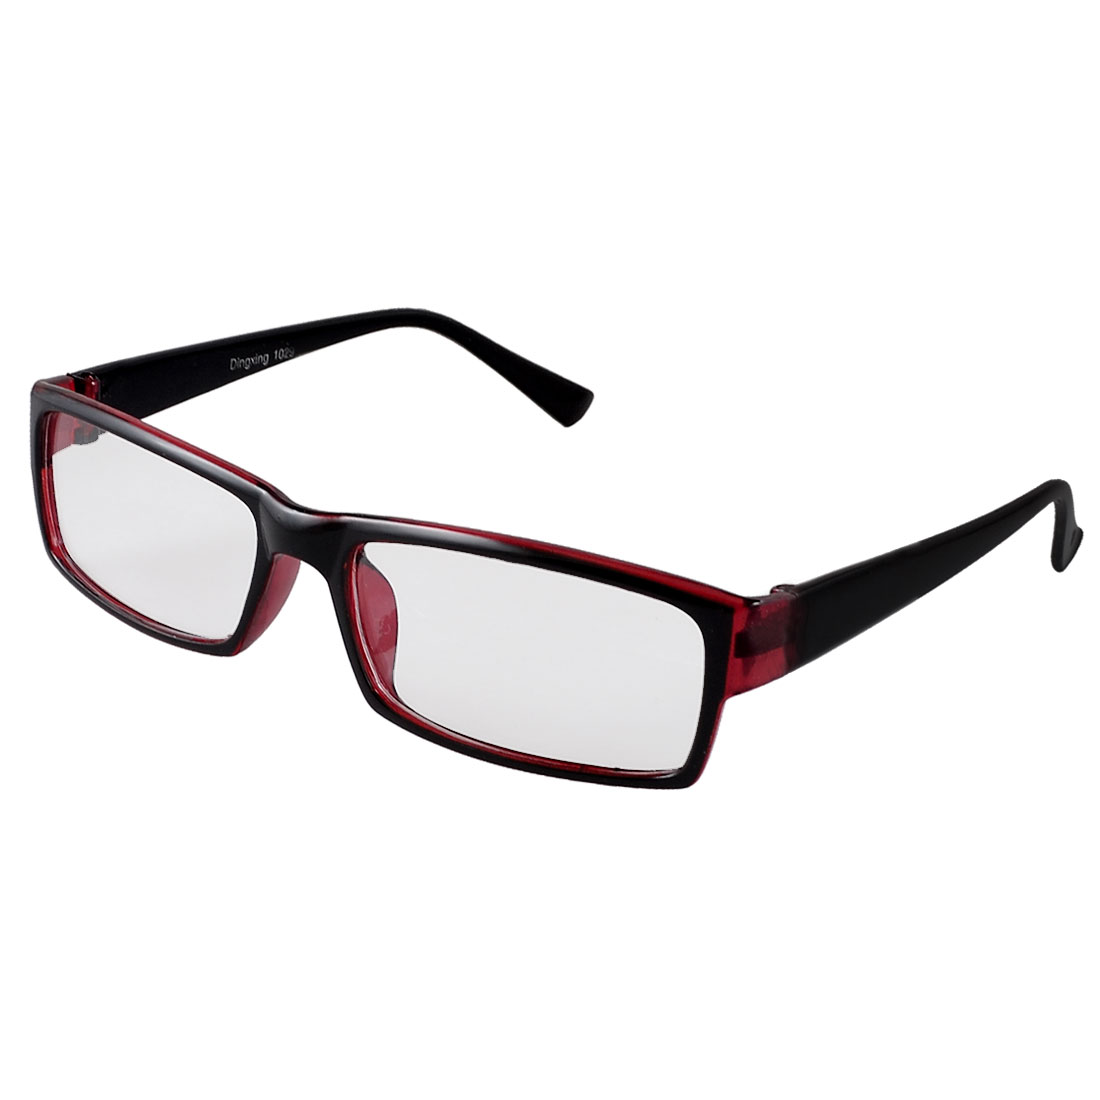 Women Clear Lens Red Black Plastic Full Rim Plano Glasses Spectacles